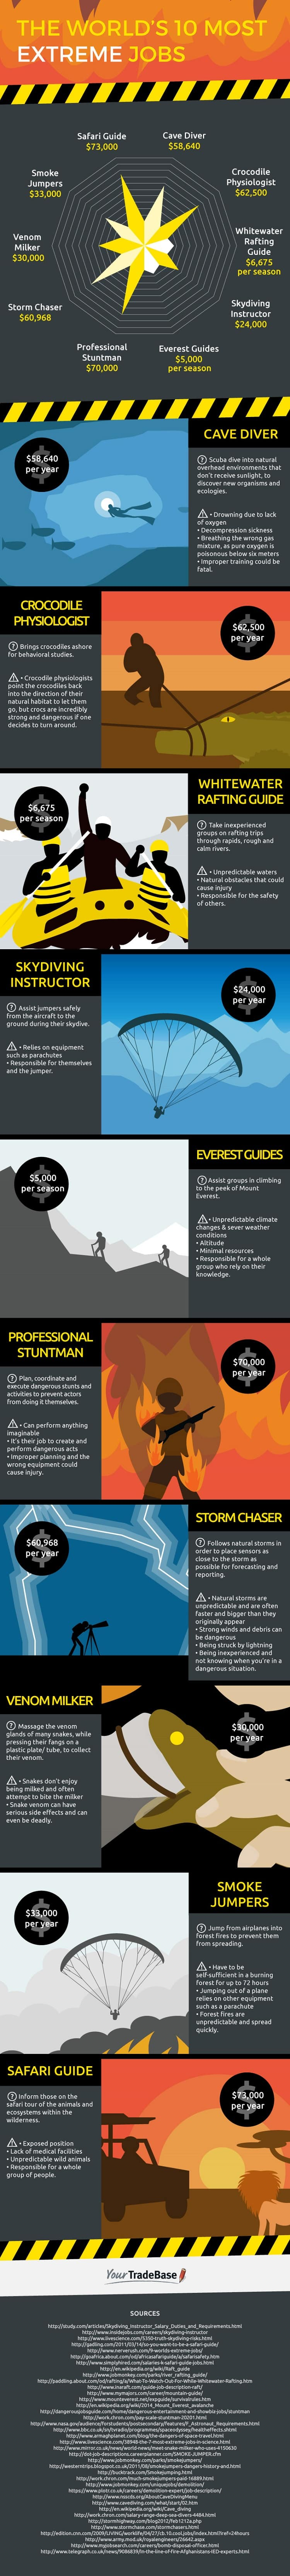 most-extreme-jobs